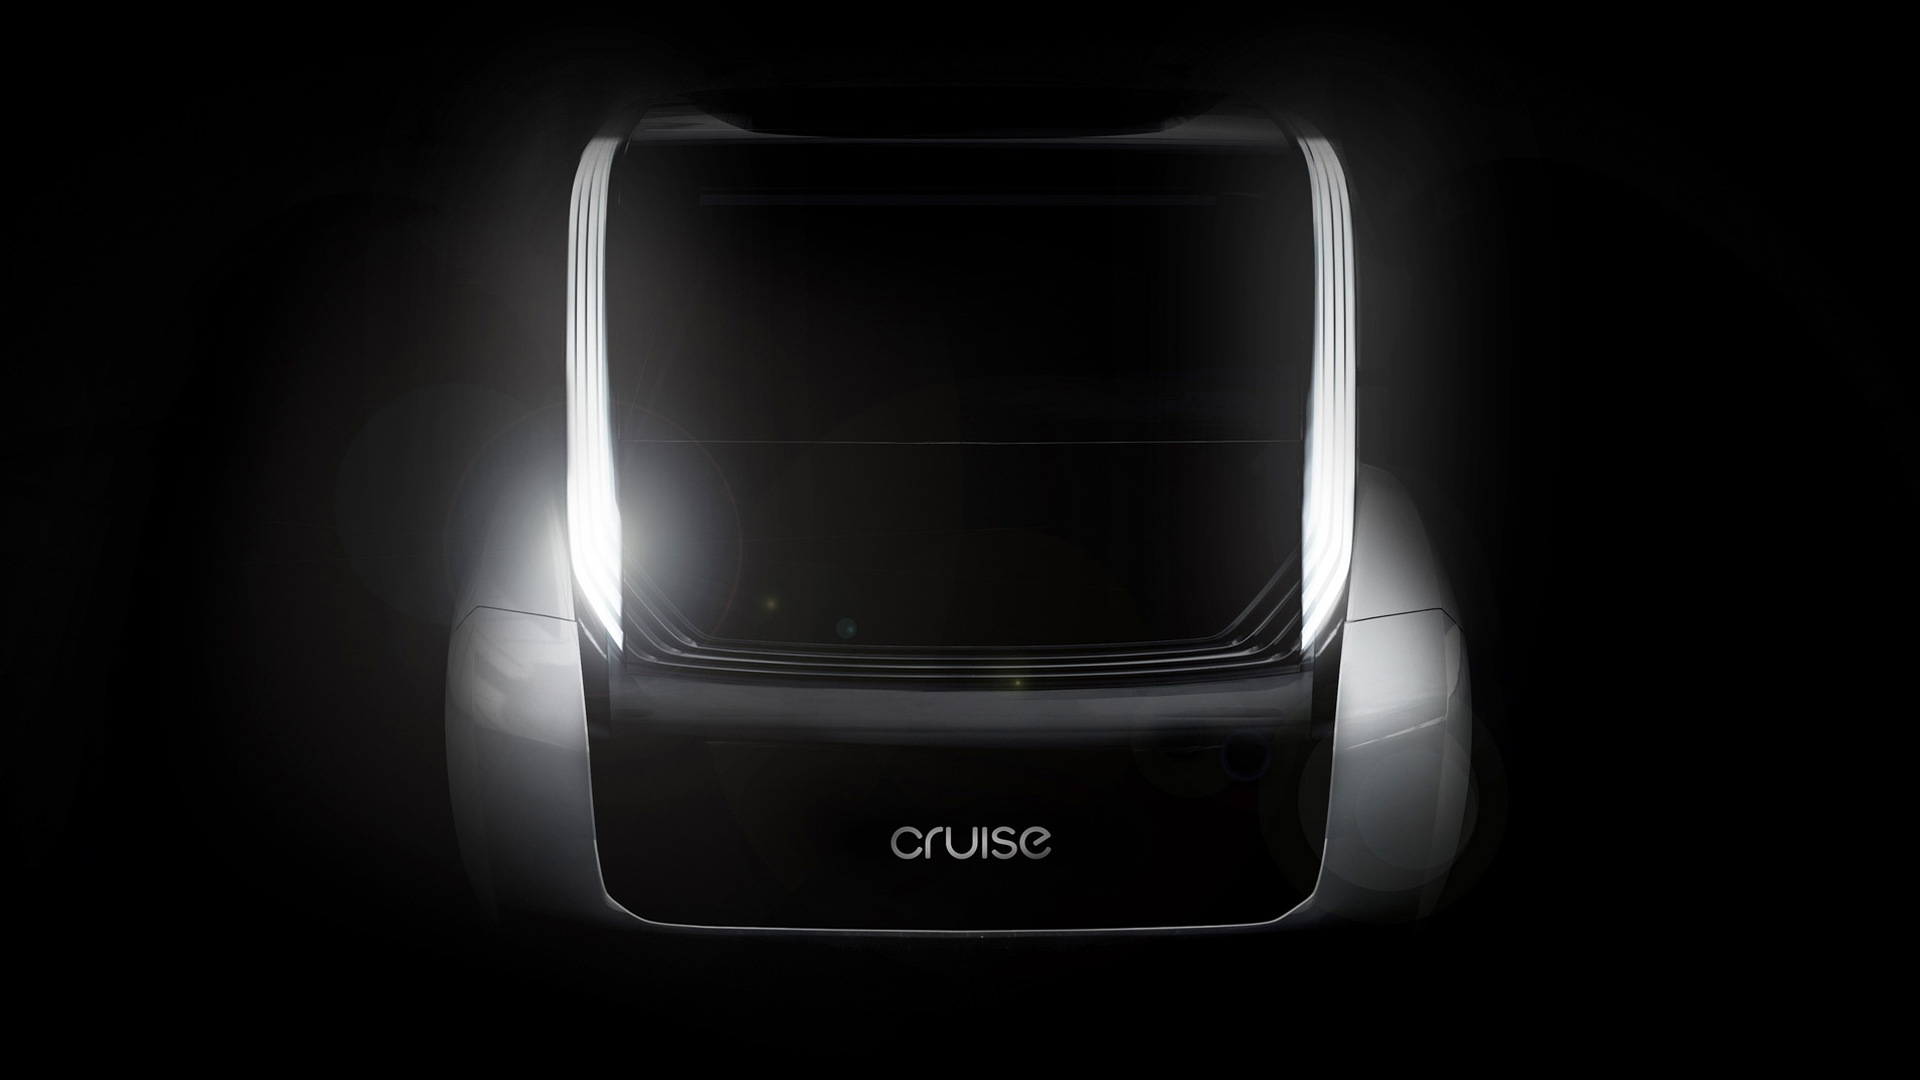 Concept rendering for Cruise purpose-built self-driving car